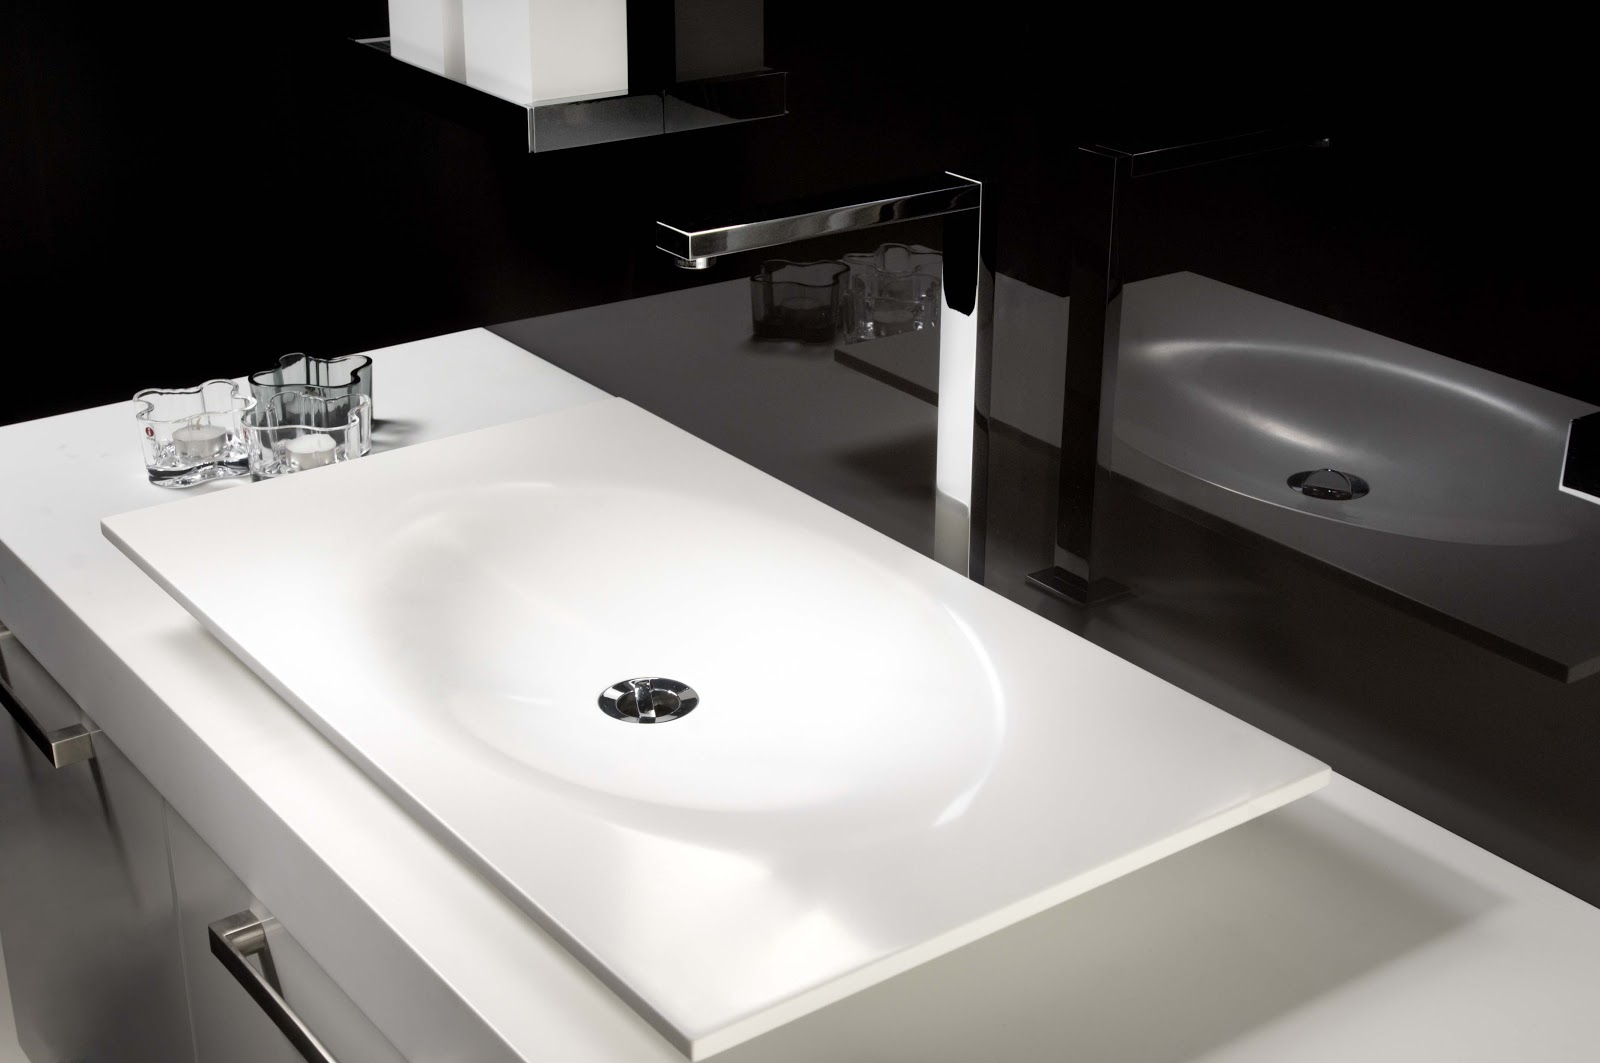 Scoop Bathroom Basin By Minosa Made With Corian   The Modern Bathroom Sink Part 68